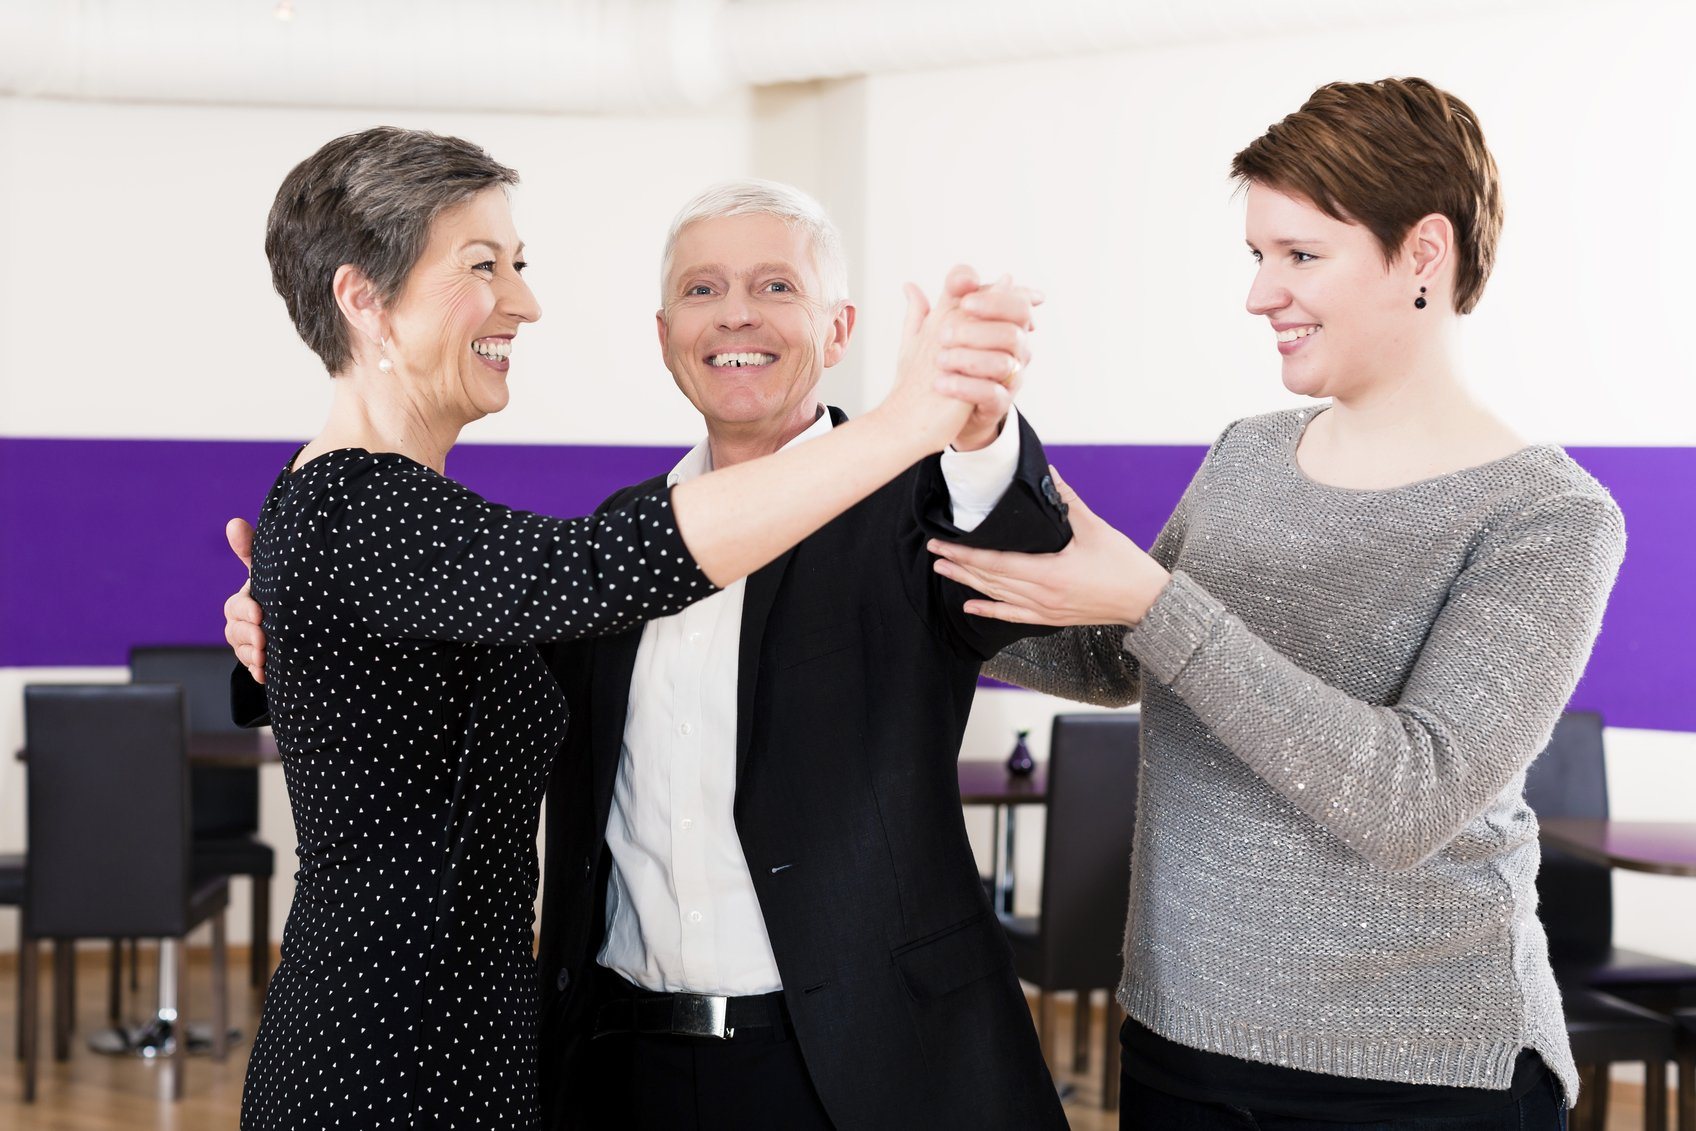 A private ballroom dance instructor can help you shed your inhibitions and find joy in dance without feeling self-conscious.